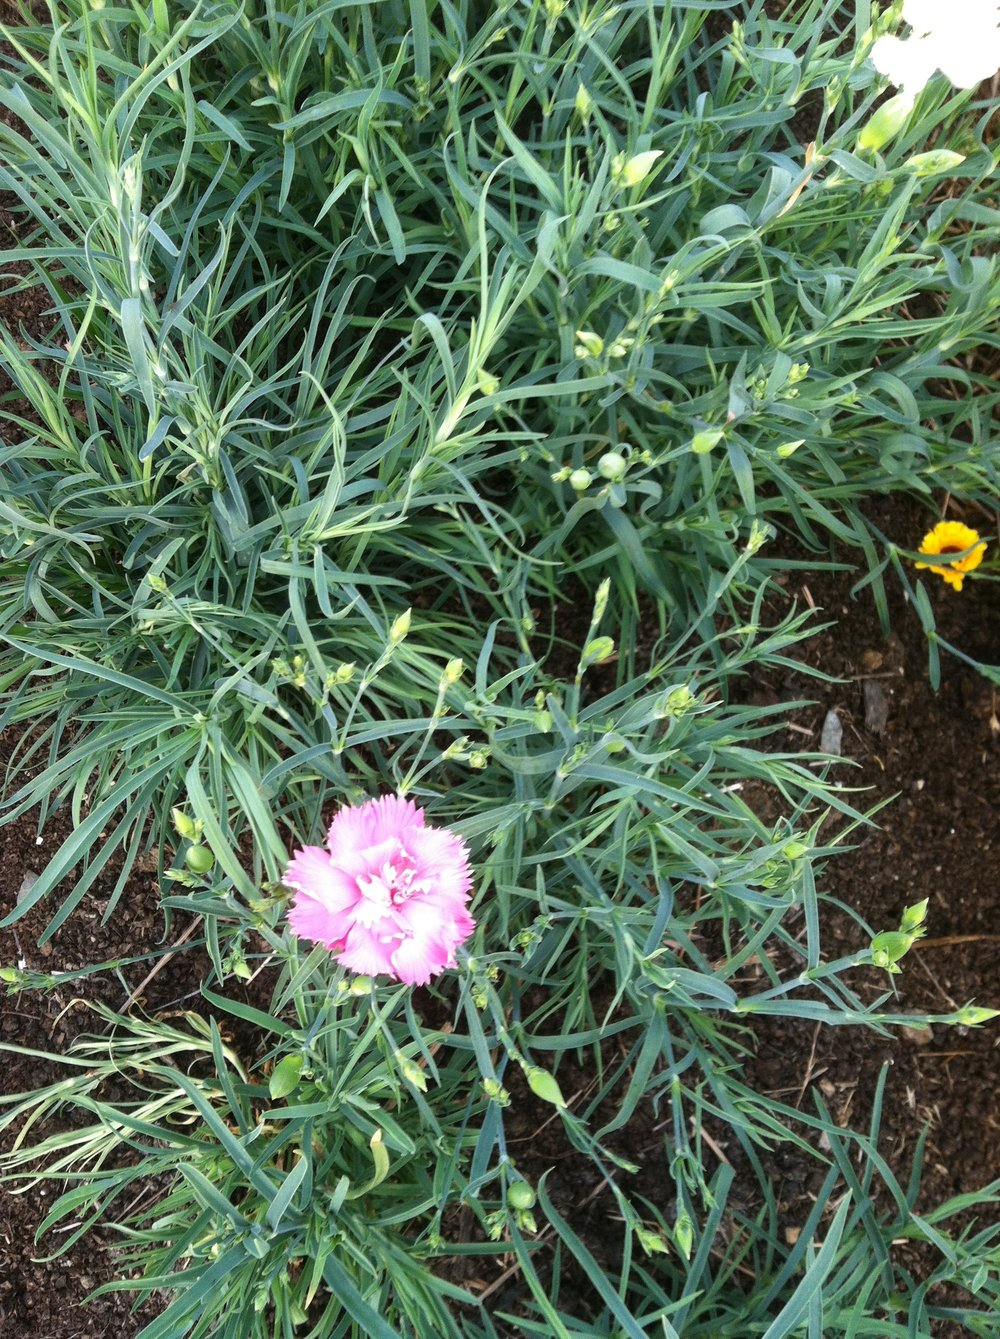 Dianthus just starting to bloom. Intoxicating fragrance.